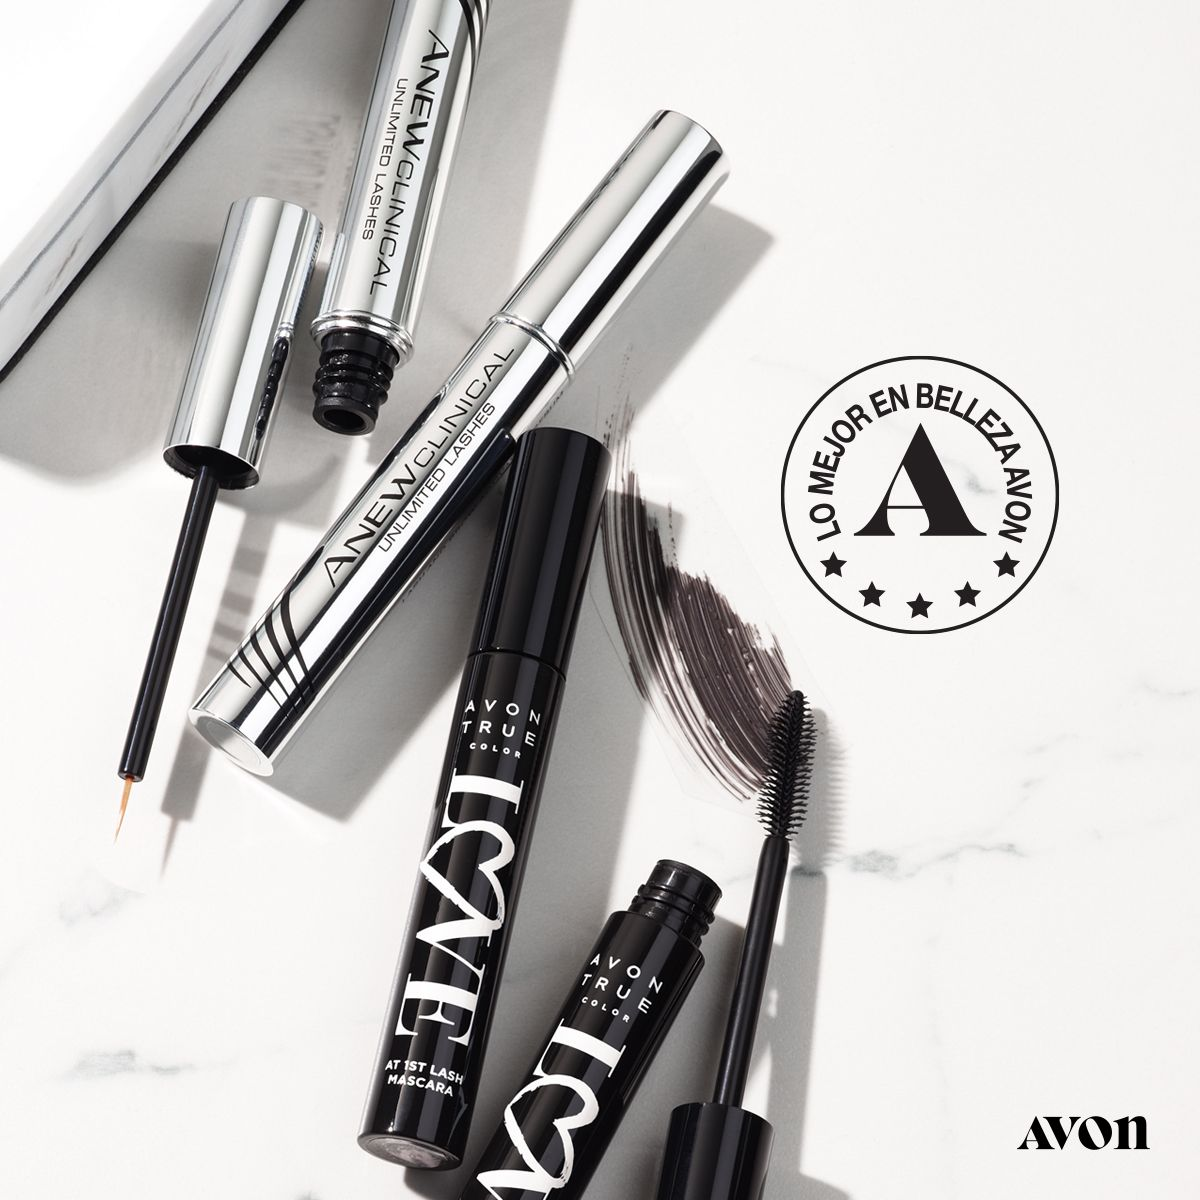 Anew clinical unlimited lashes lash brow activating